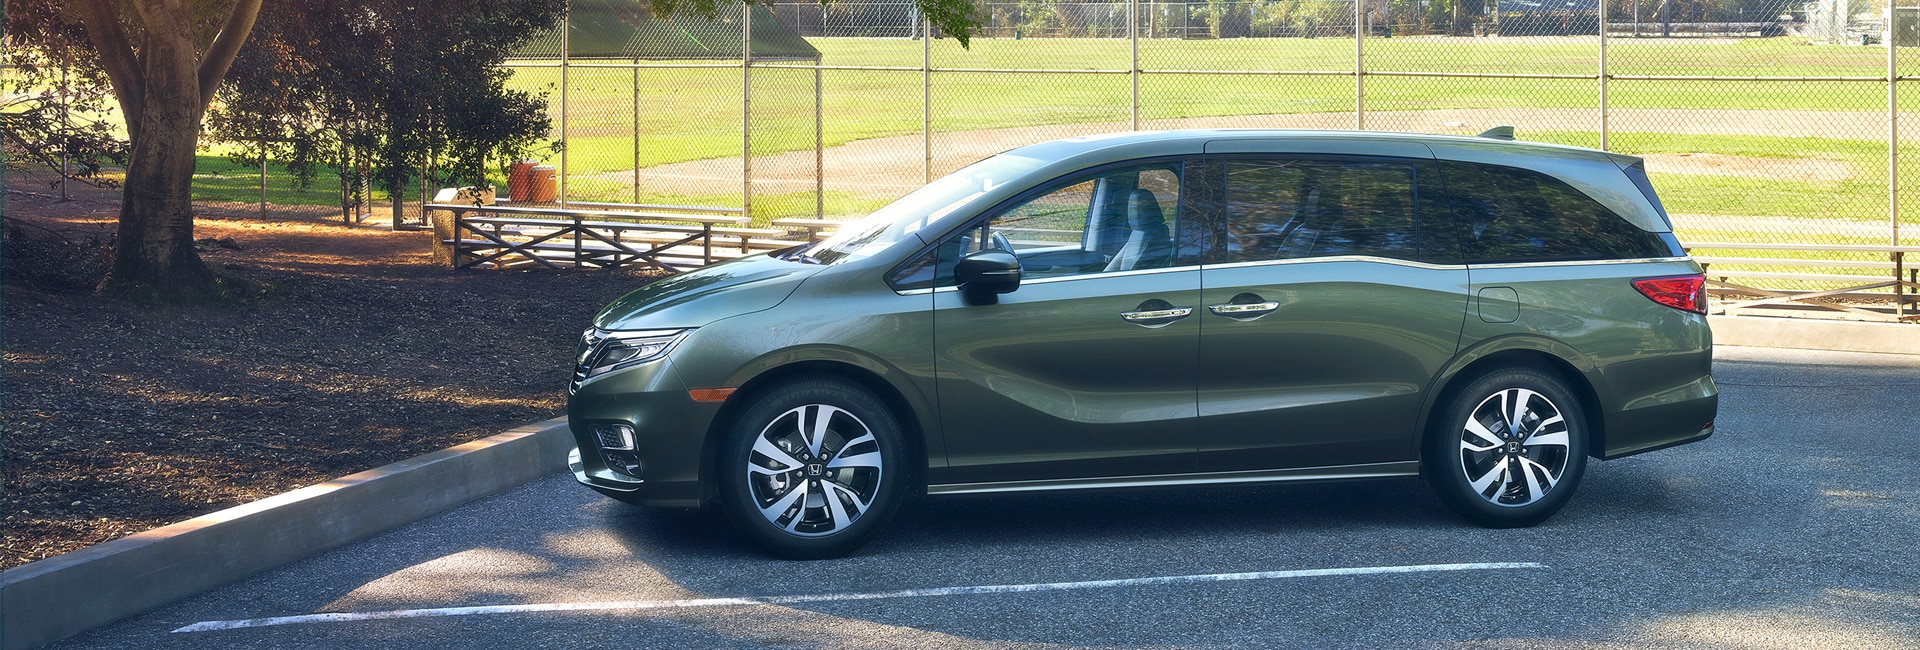 Honda Odyssey Exterior Vehicle Features